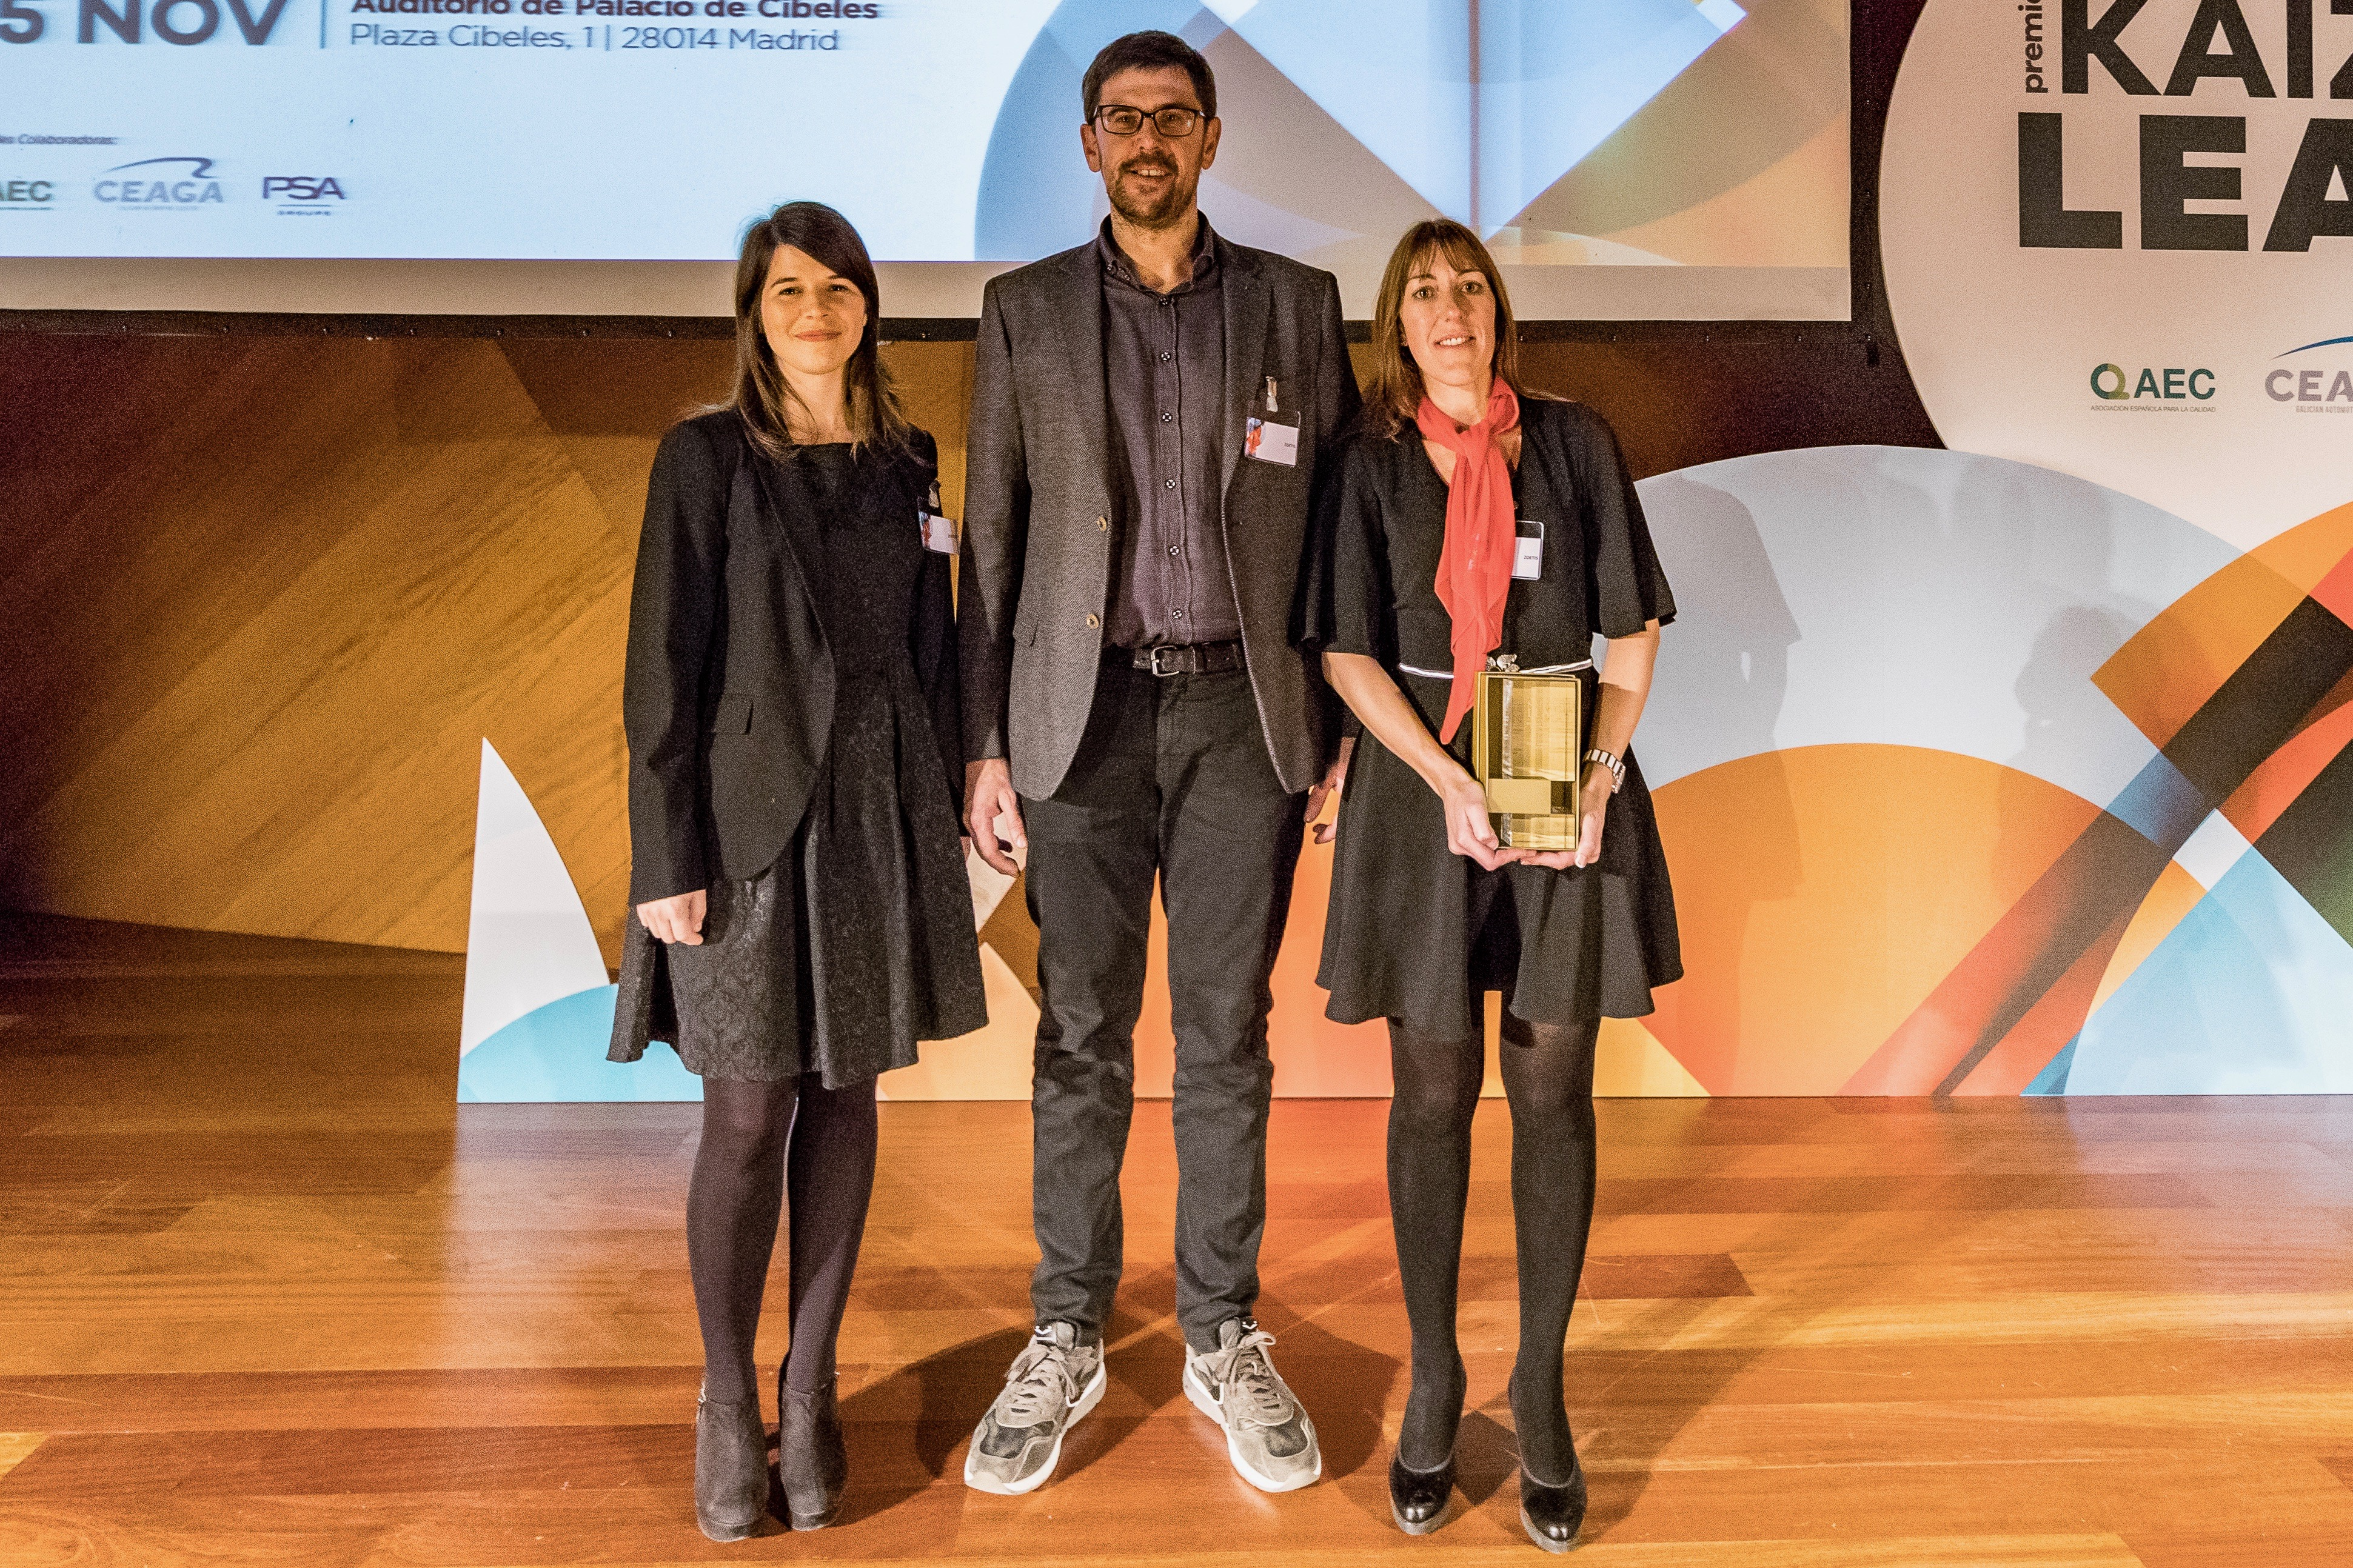 Kaizen Institute Spain awarded Zoetis with the Premio KAIZEN™ Lean España, Category: Excellence in Continuous Improvement System